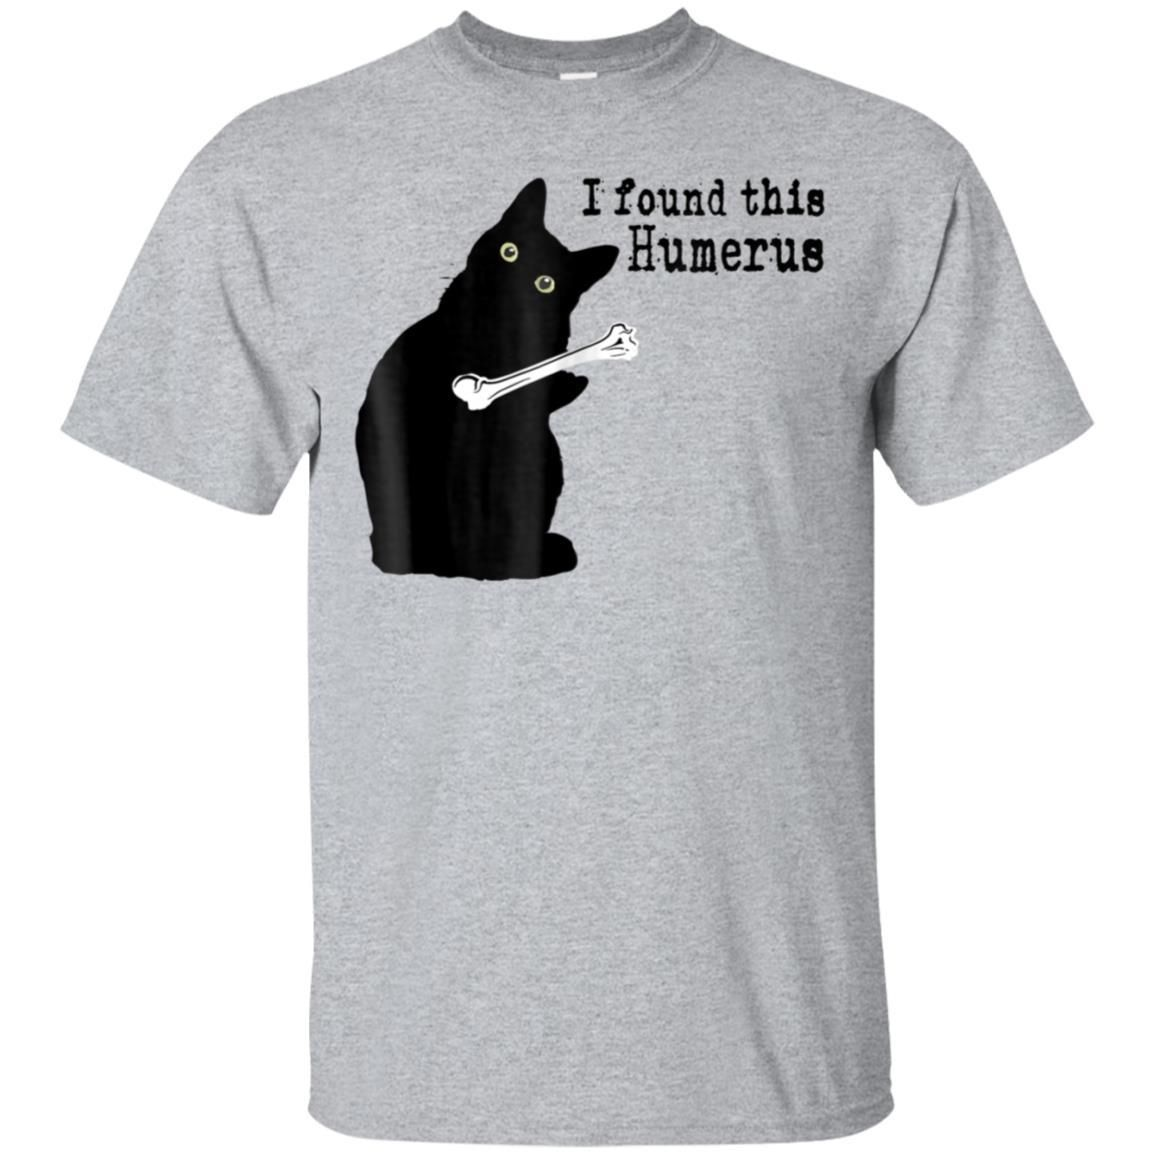 ac393ad5 T Shirt · Humor · Medium · Awesome · I Found This Hume...  http://99promocode.com/products